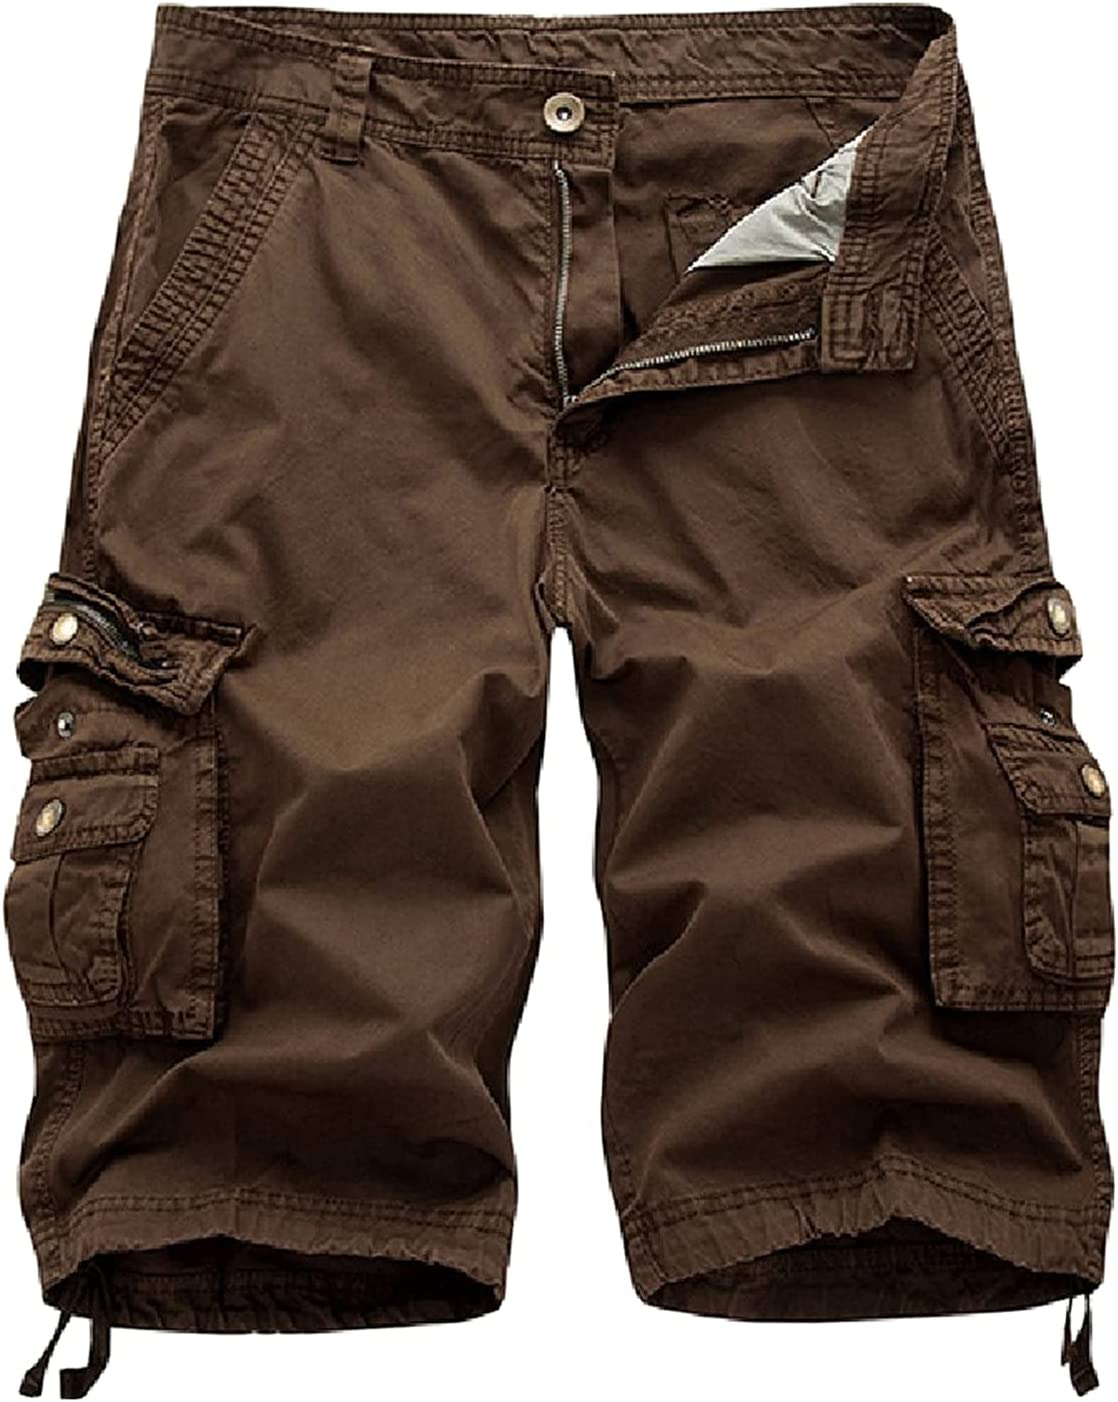 Outdoor Twill Cargo Shorts for Men Casual Summer Lightweight Outdoor Shorts Relaxed Fit Stretchy Multi-Pocket Shorts (Brown,32)